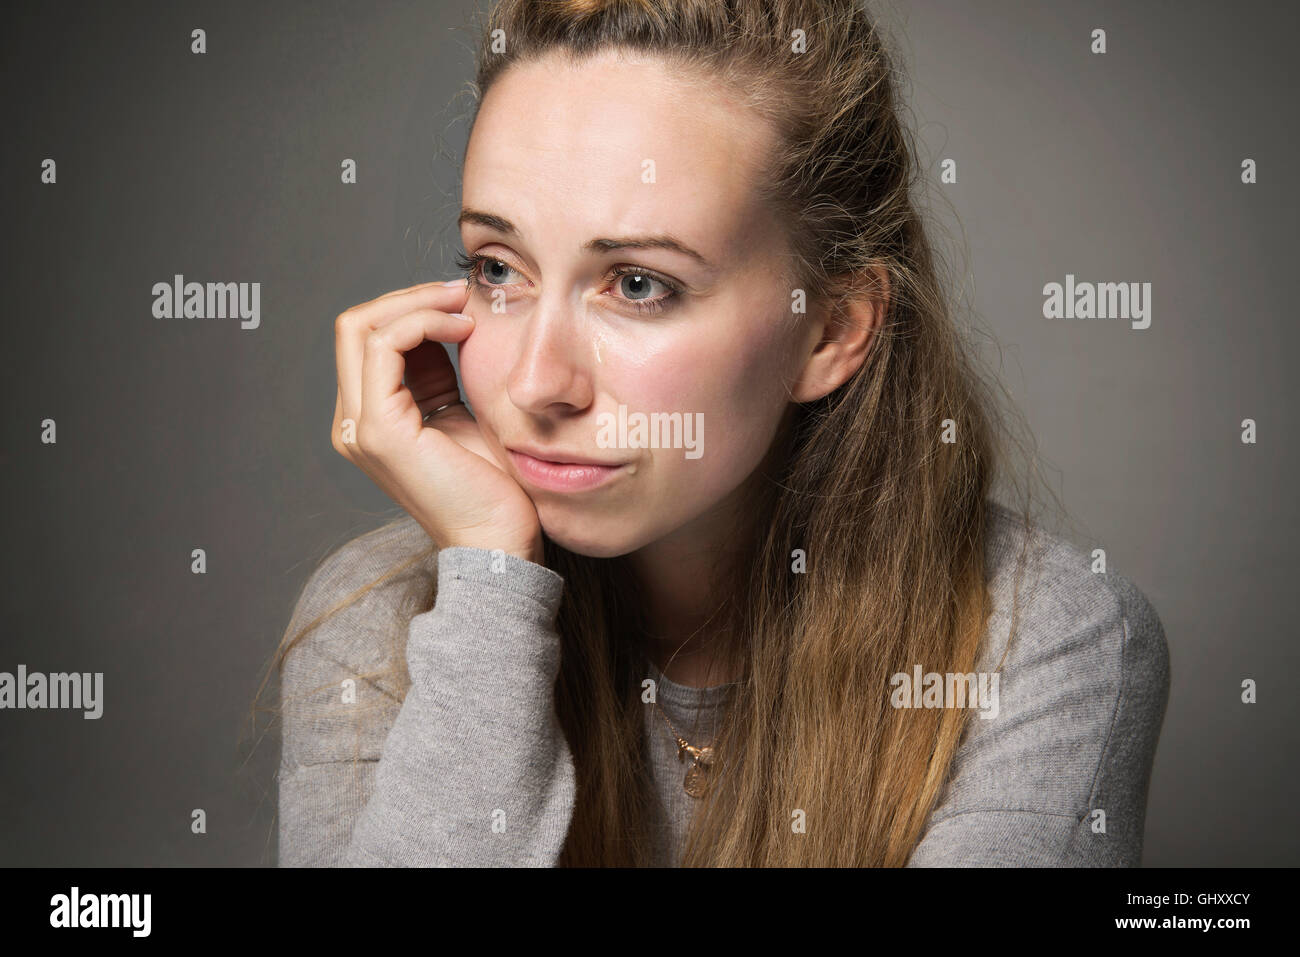 Sad young woman close up tears running down face looking in despair hand resting on chin looking away sadness concept - Stock Image